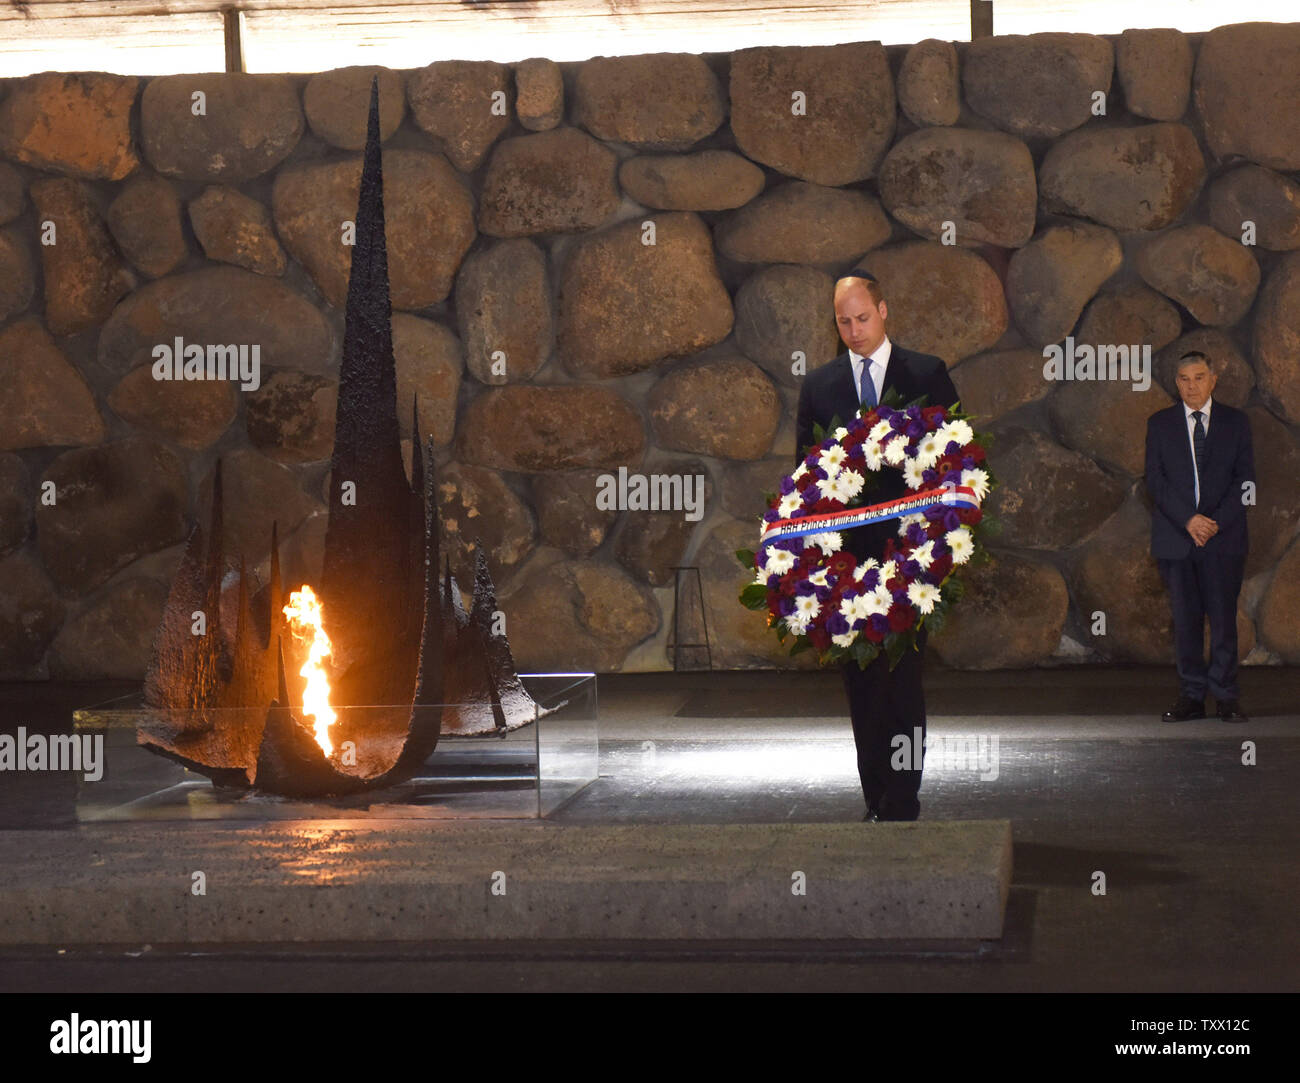 Prince William, the Duke of Cambridge, lays a wreath during a memorial ceremony in the Hall of Remembrance at Yad Vashem, the World Holocaust Remembrance Center, in Jerusalem, Israel, June 26, 2018.  Photo by Debbie Hill/UPI - Stock Image